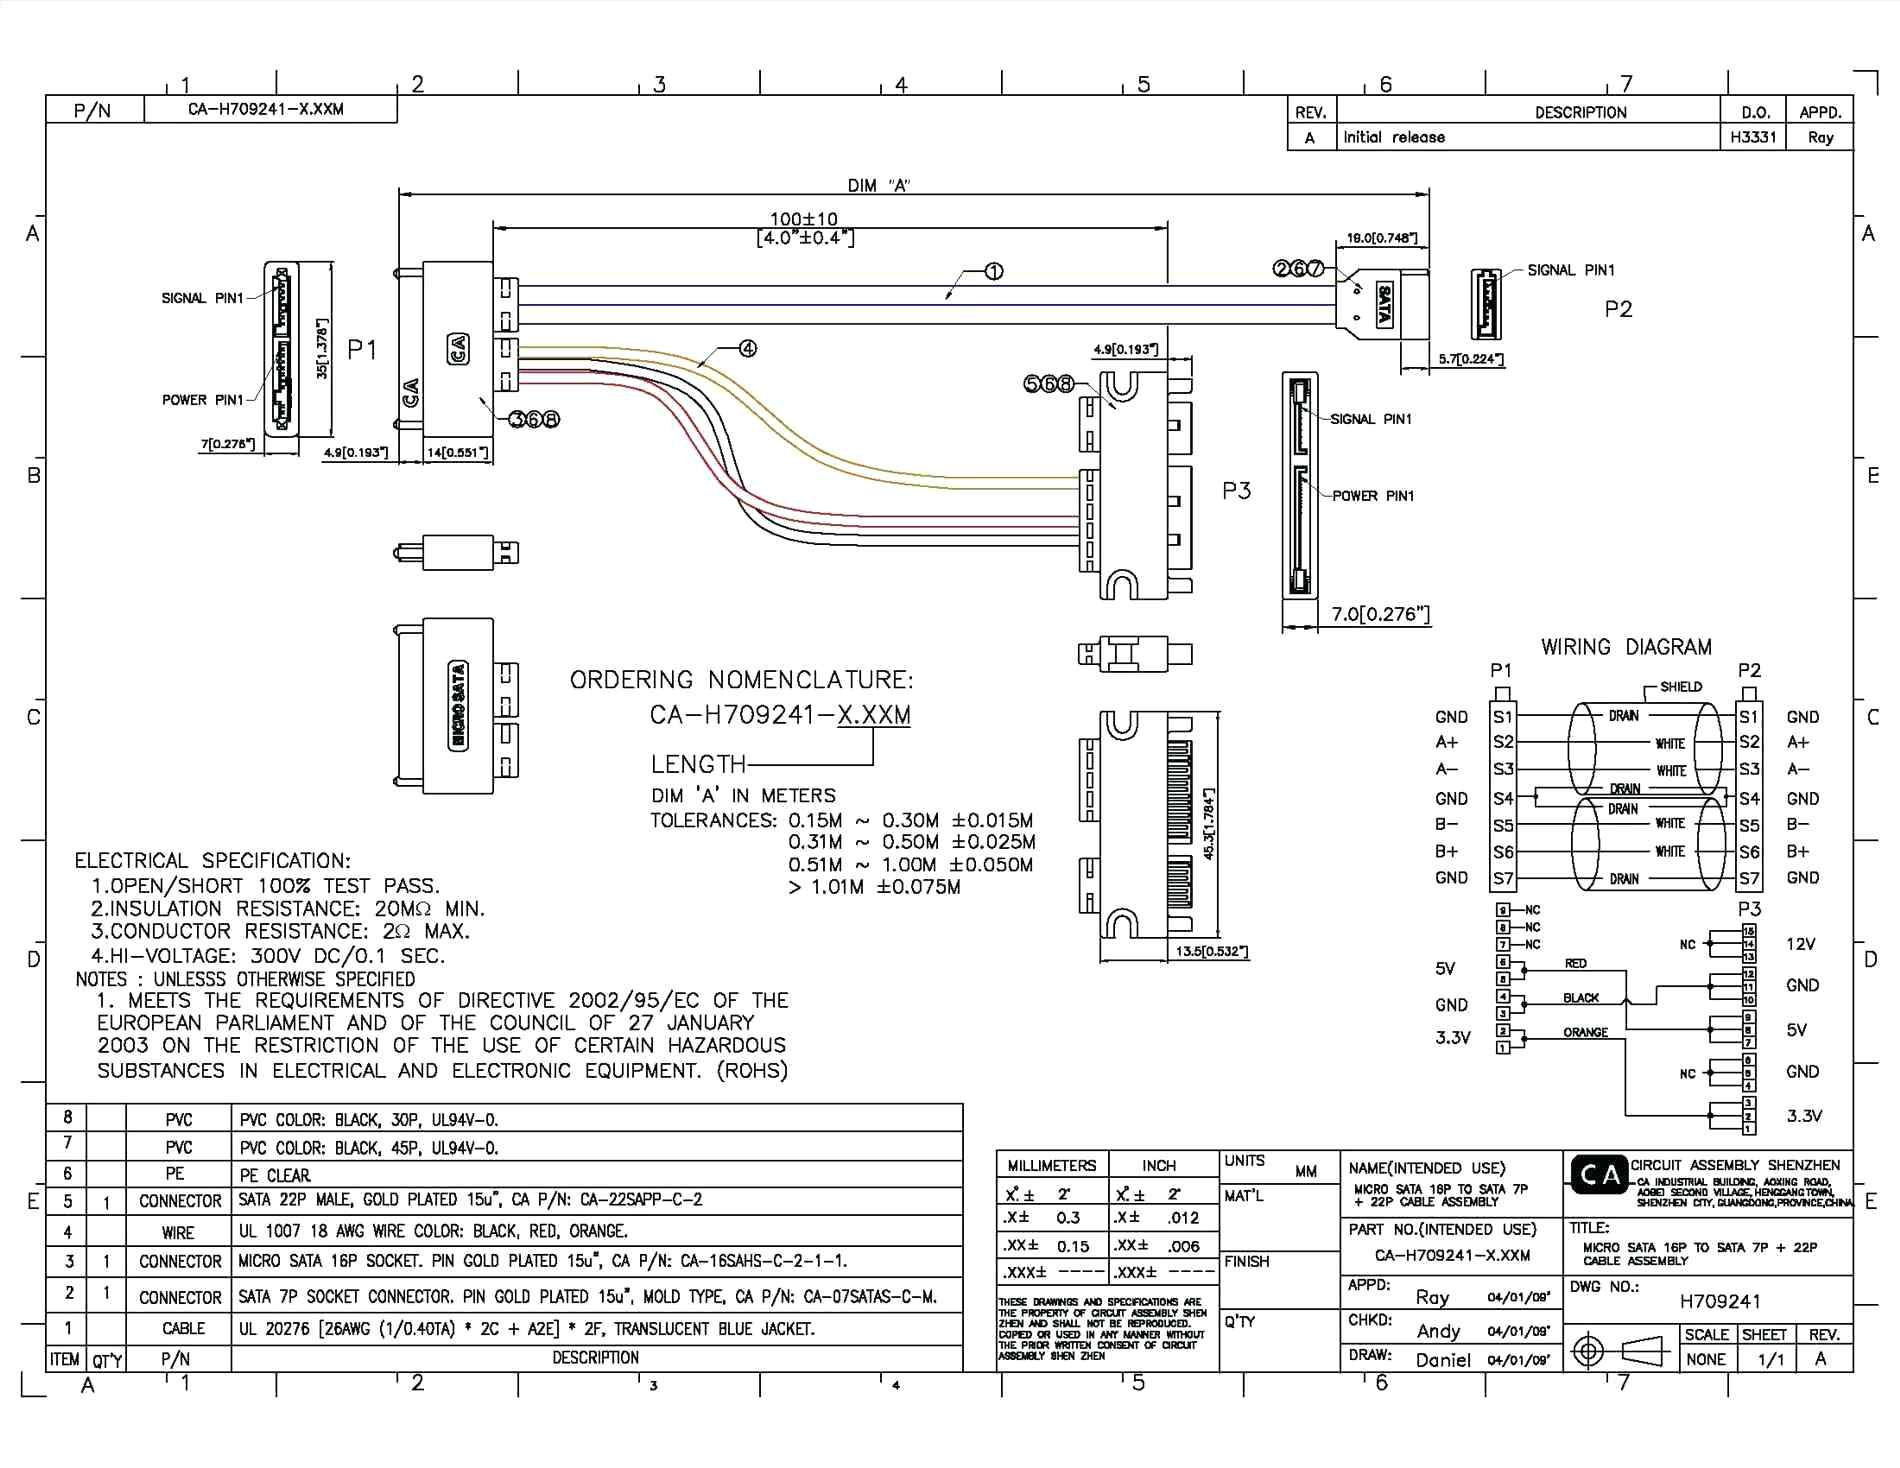 Sata To Usb Cable Wiring Diagram Copy Usb Serial Wiring Diagram I To - Usb A To Usb A Cable Wiring Diagram